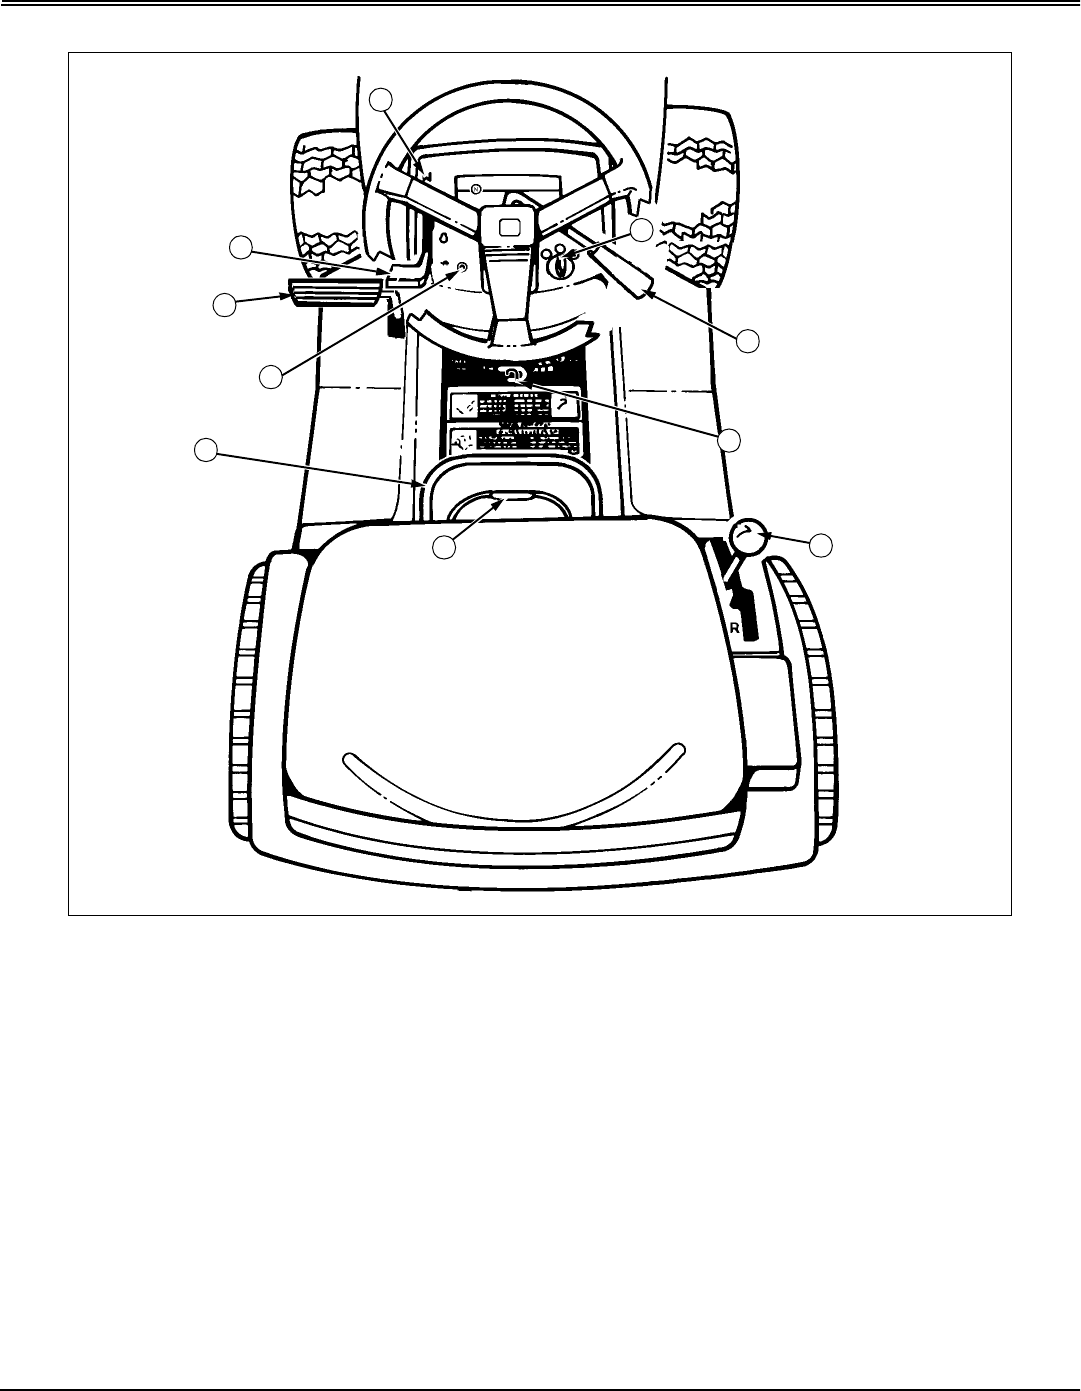 Page 8 of Scotts Lawn Mower S2546 User Guide